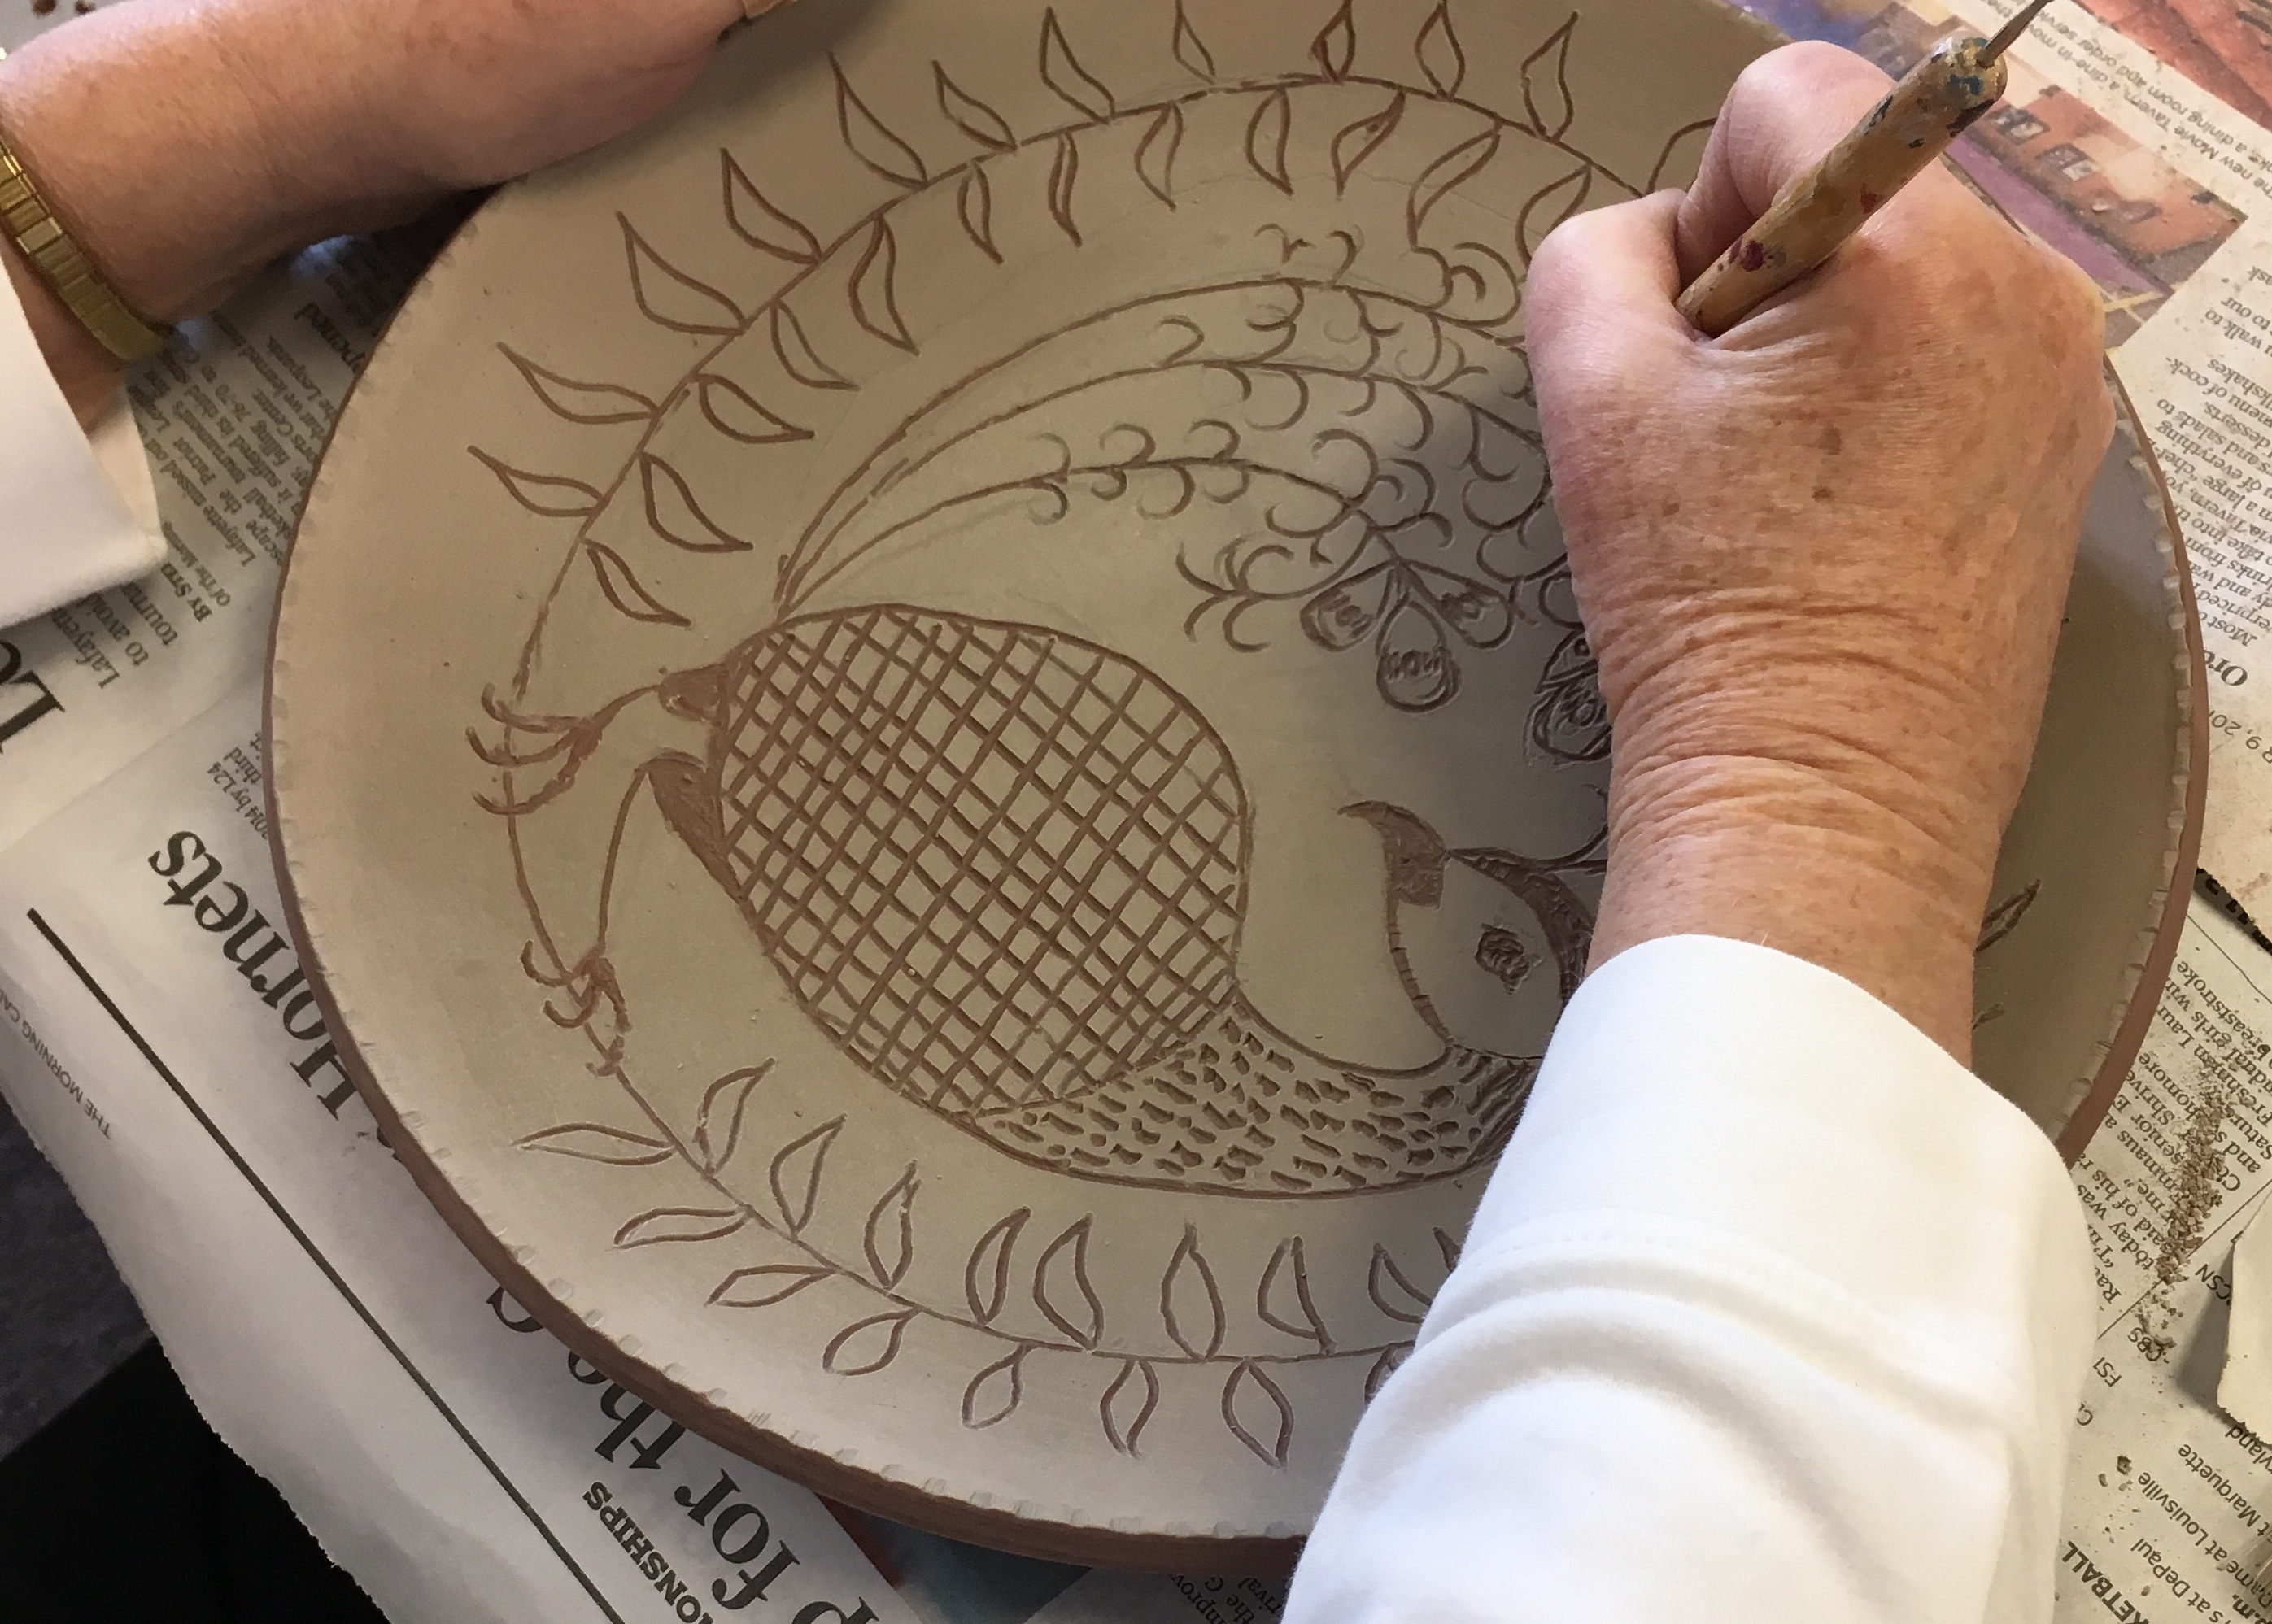 Sgraffito workshops for 6-12 folks